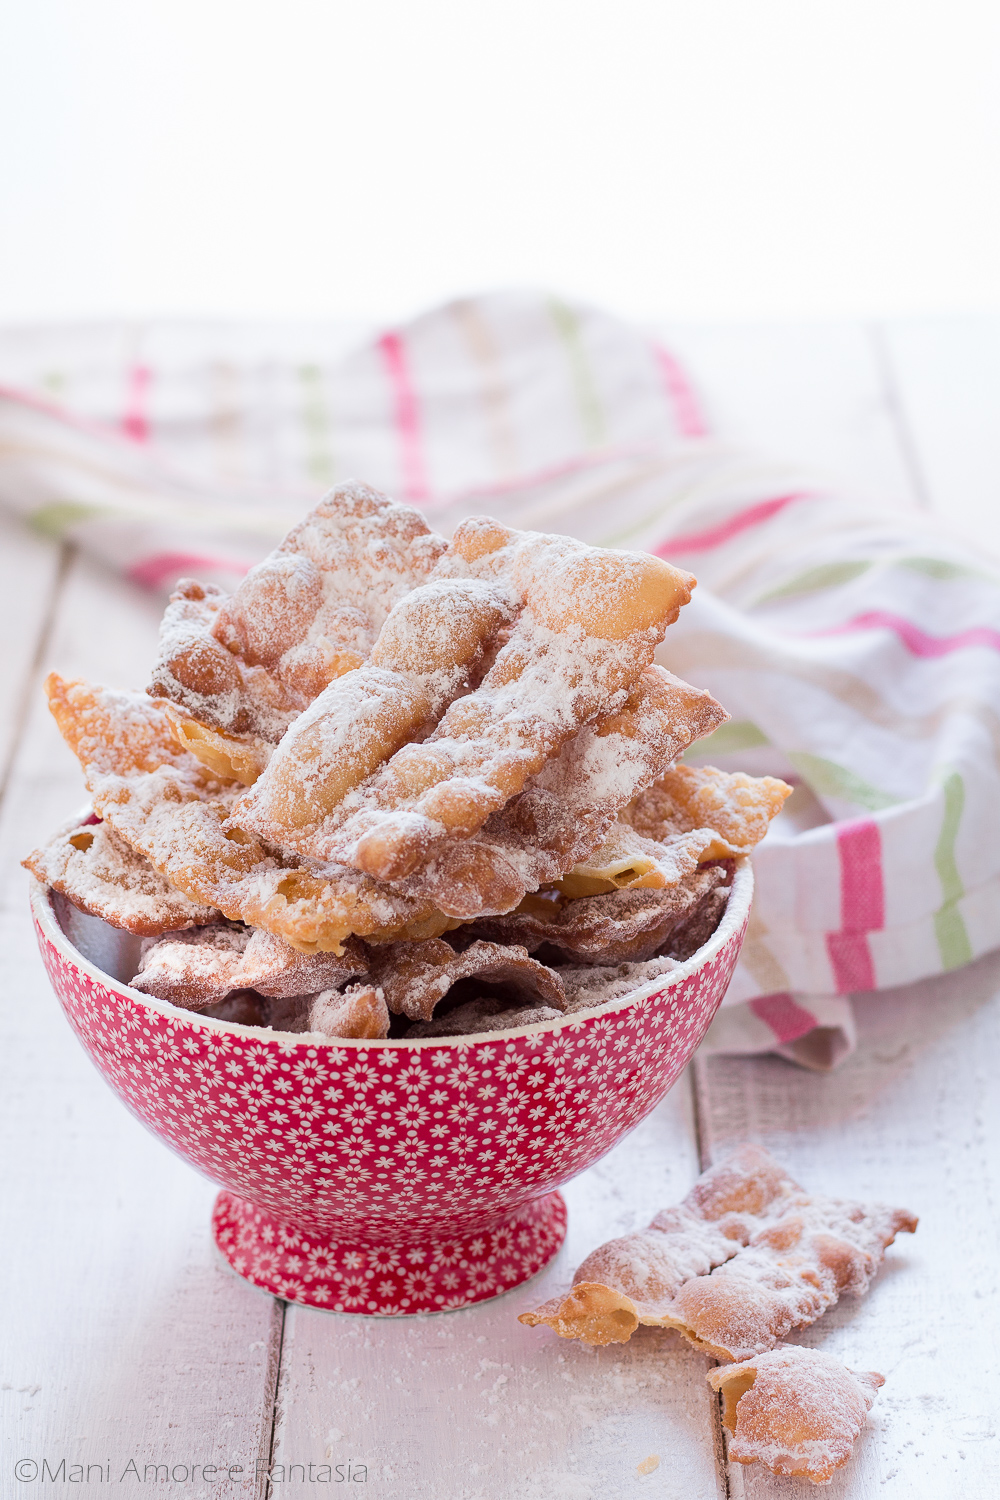 CHIACCHIERE AL BAILEYS CON DUE INGREDIENTI